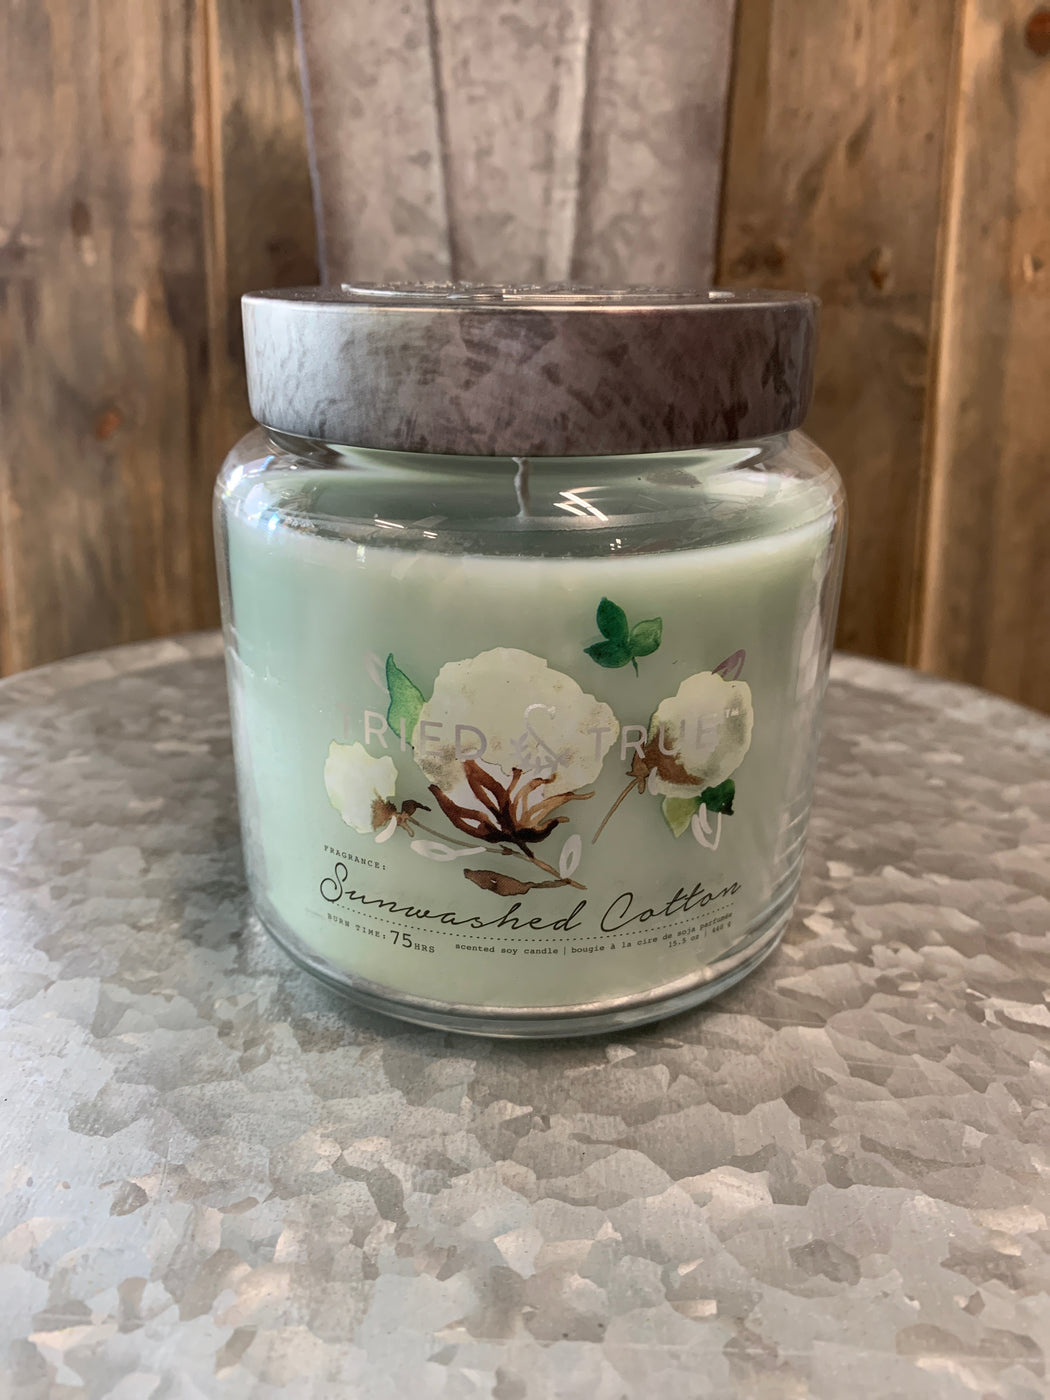 Bring the warmth and freshness of line-dried sheets to your bedroom or living room when you light this 15.5-ounce jar candle featuring notes of lavender, water lily and white jasmine. When lit, this candle's soft, ambient lighting and its unforgettable fragrances provide hours of joy and comfort. Perfect for hostess gifts, stocking stuffers and appreciation gifts.      Soy-blend wax scented candle in glass jar.     Fragrance: Notes of lavender, water lily, white jasmine.     Includes 1 wick and metal lid.